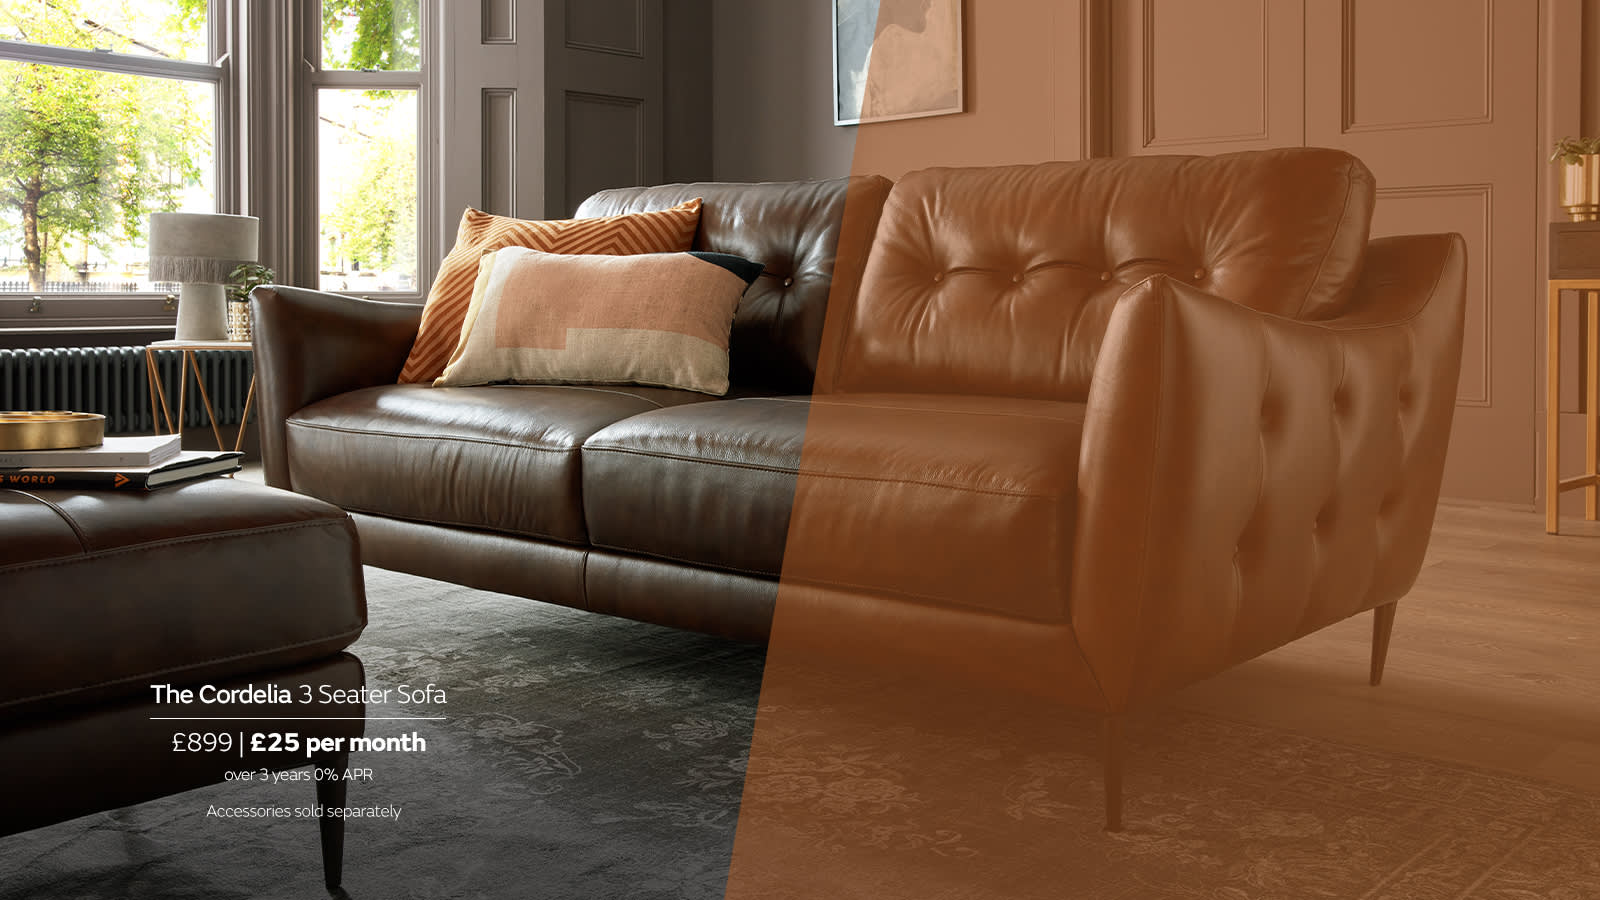 Sofology Cordelia Leather Sofa